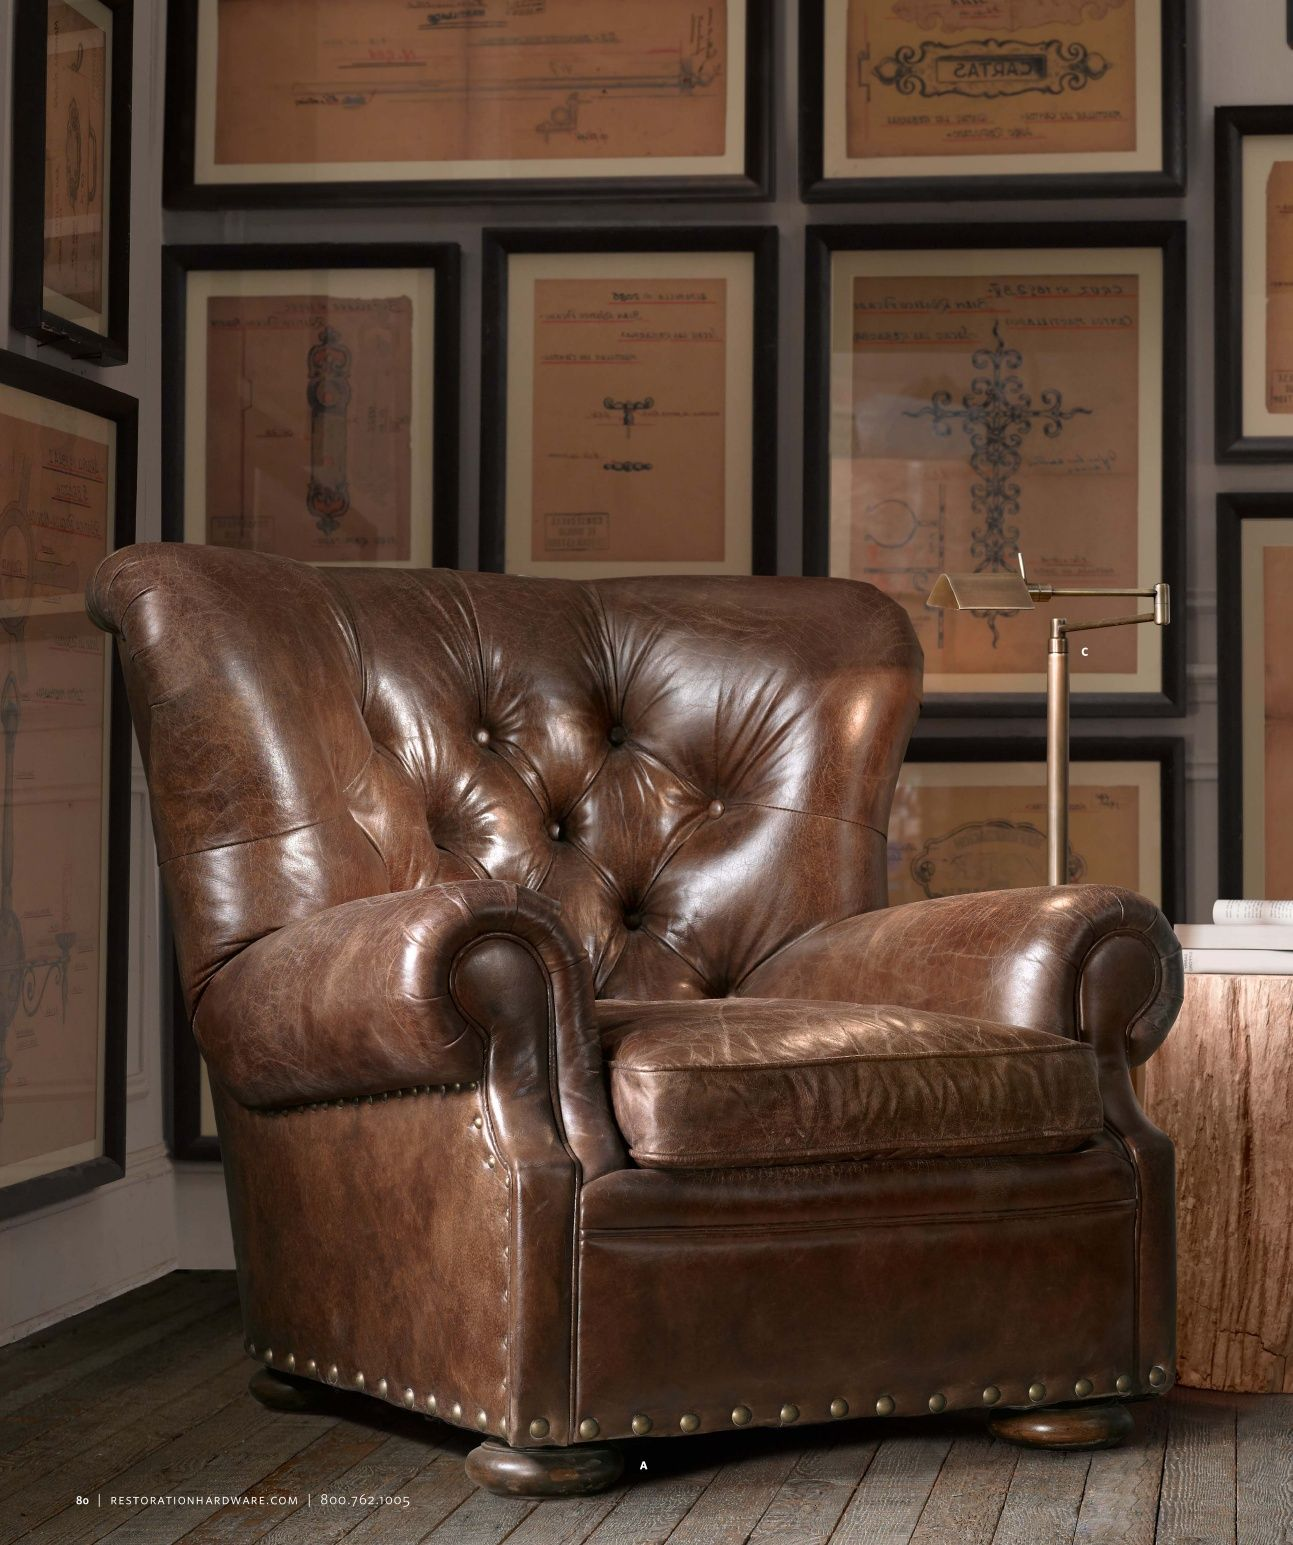 Perfect for a library or reading nook Furniture Finds